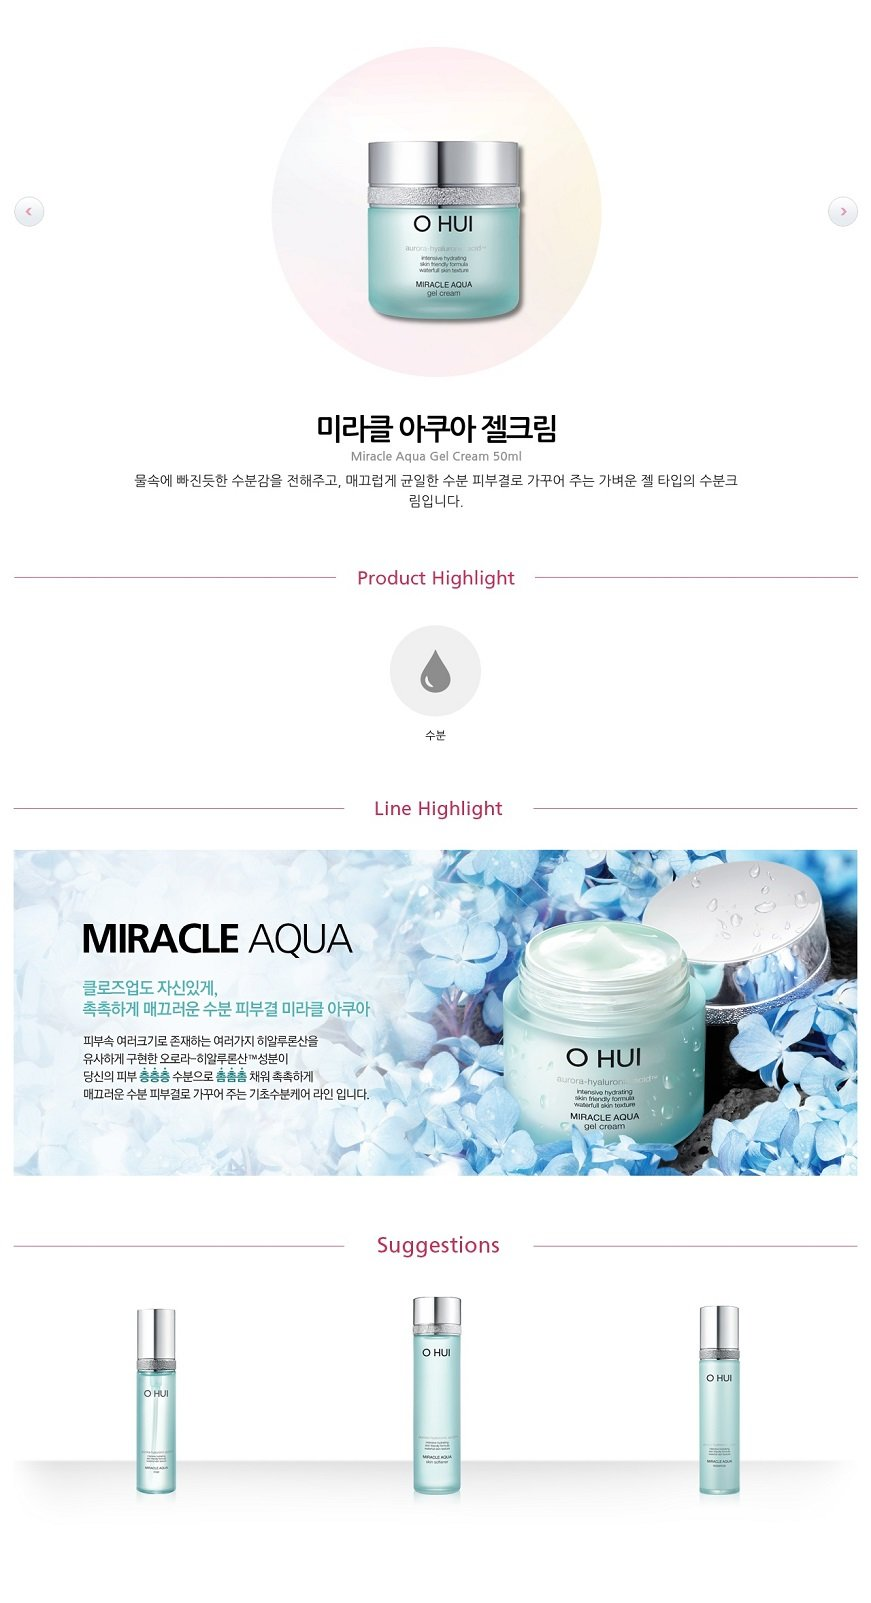 OHUI Miracle Aqua Gel Cream 50ml malaysia singapore indonesia